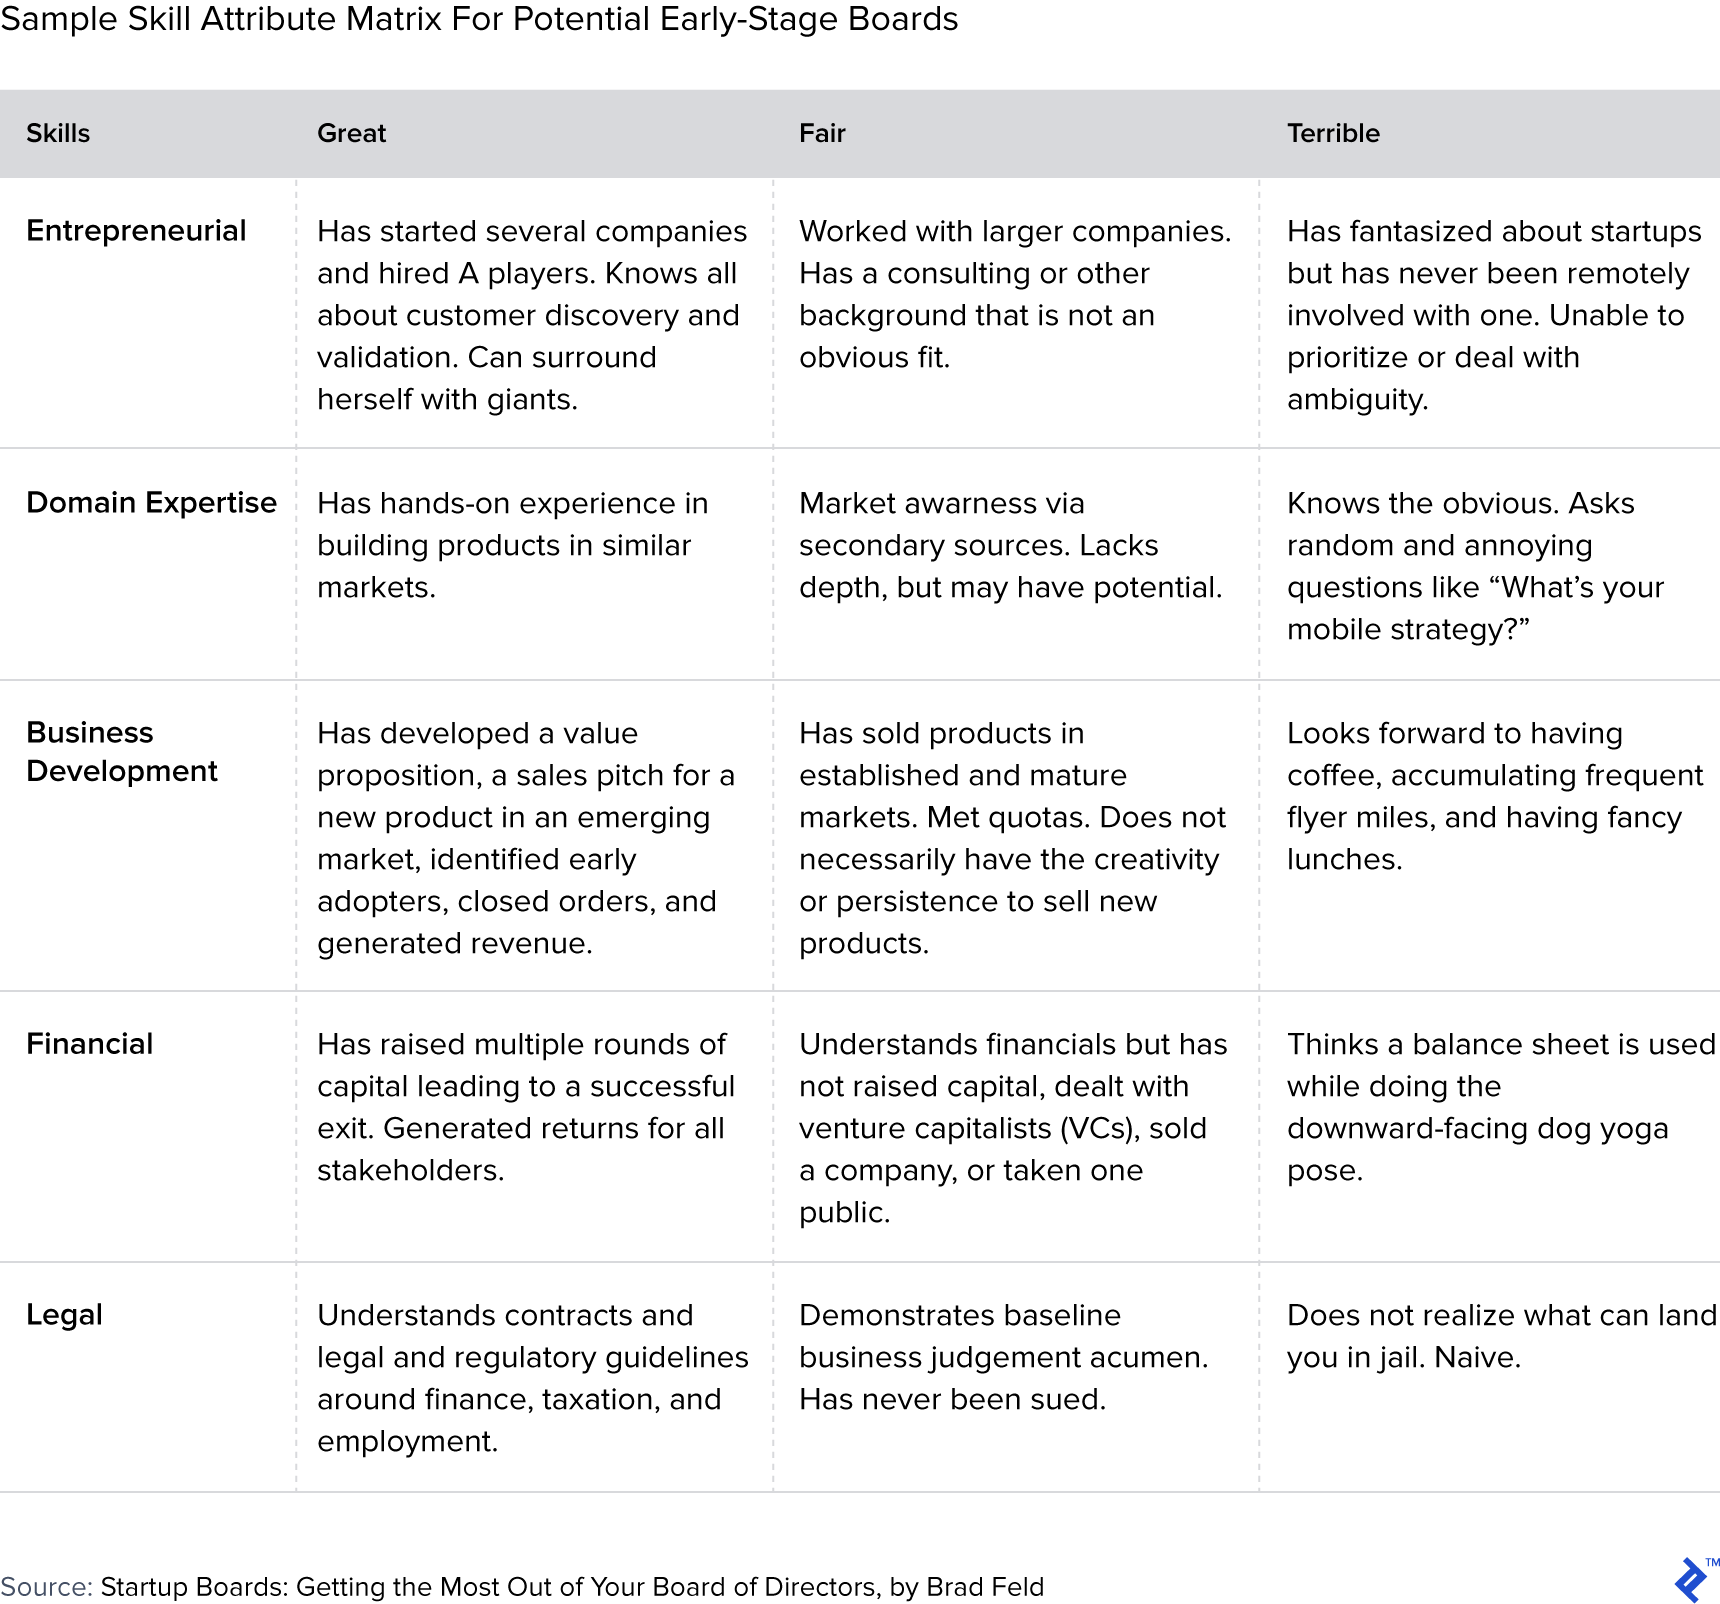 Table showing sample skill attribute matrix for potential early-stage boards